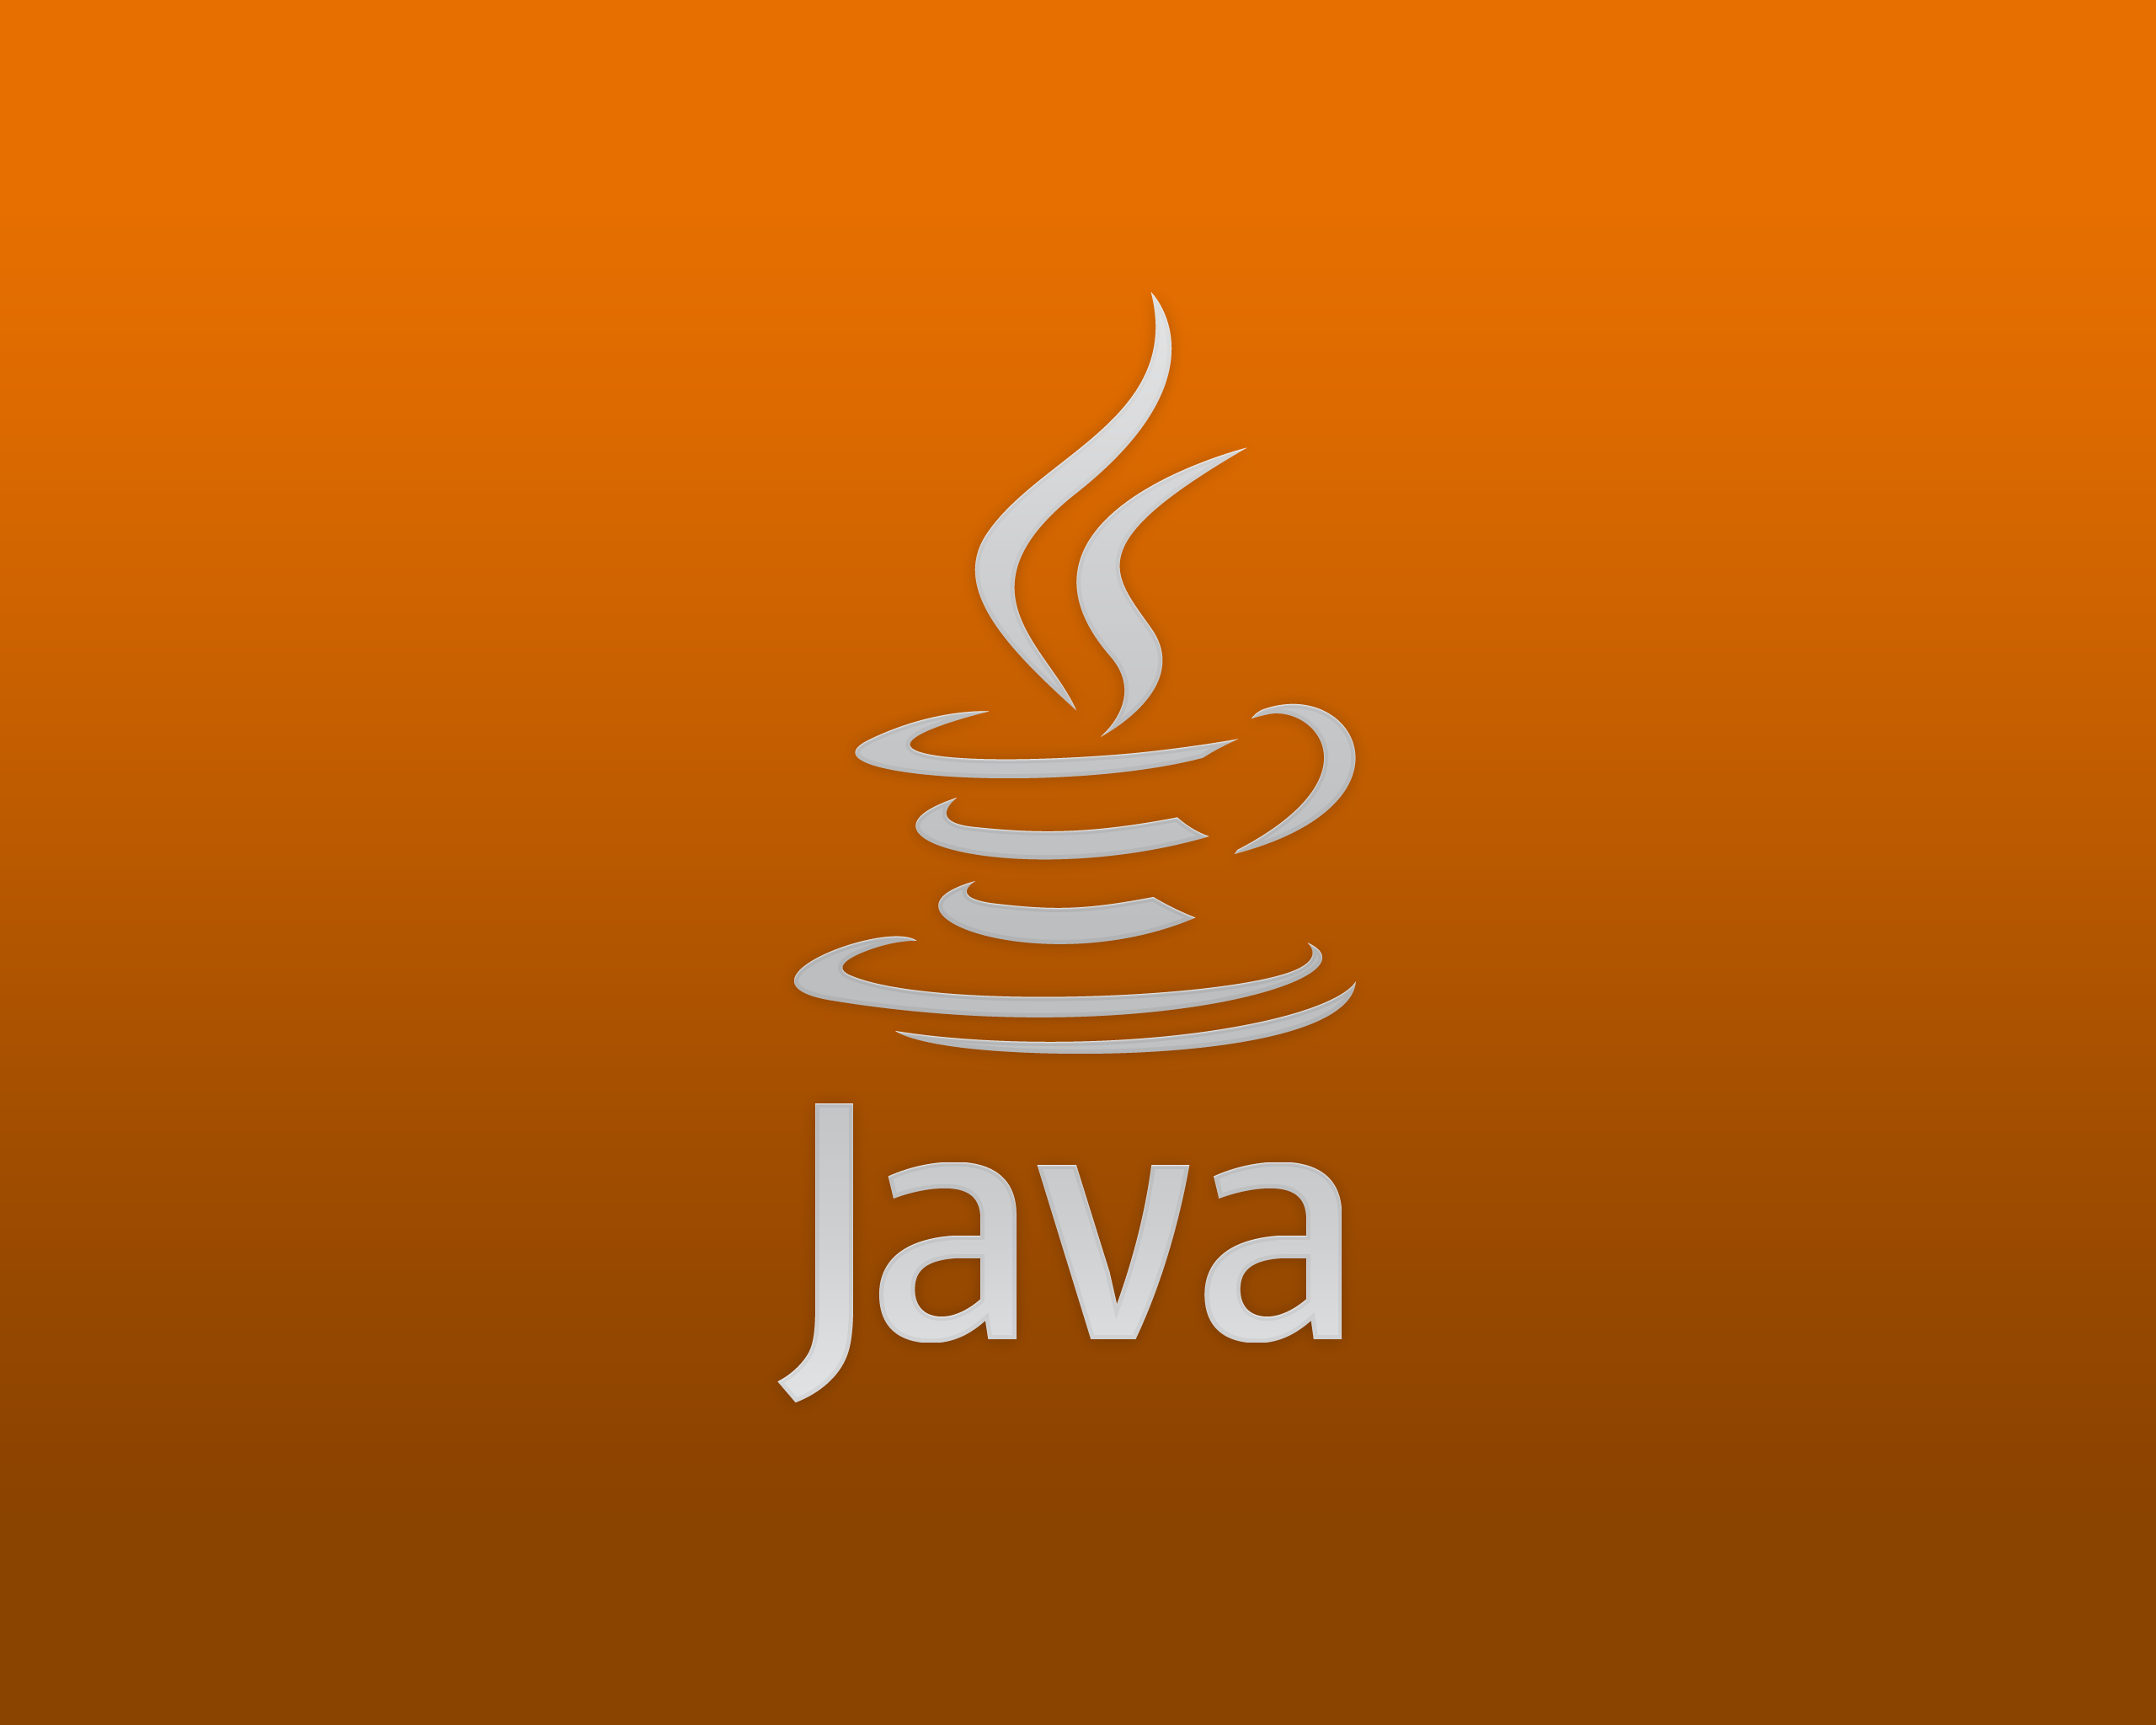 Java Interview Experience 2015 Http Privatejobshub Blogspot In 2015 03 Java Interview Experience Java Programming Java Programming Language Java Tutorial